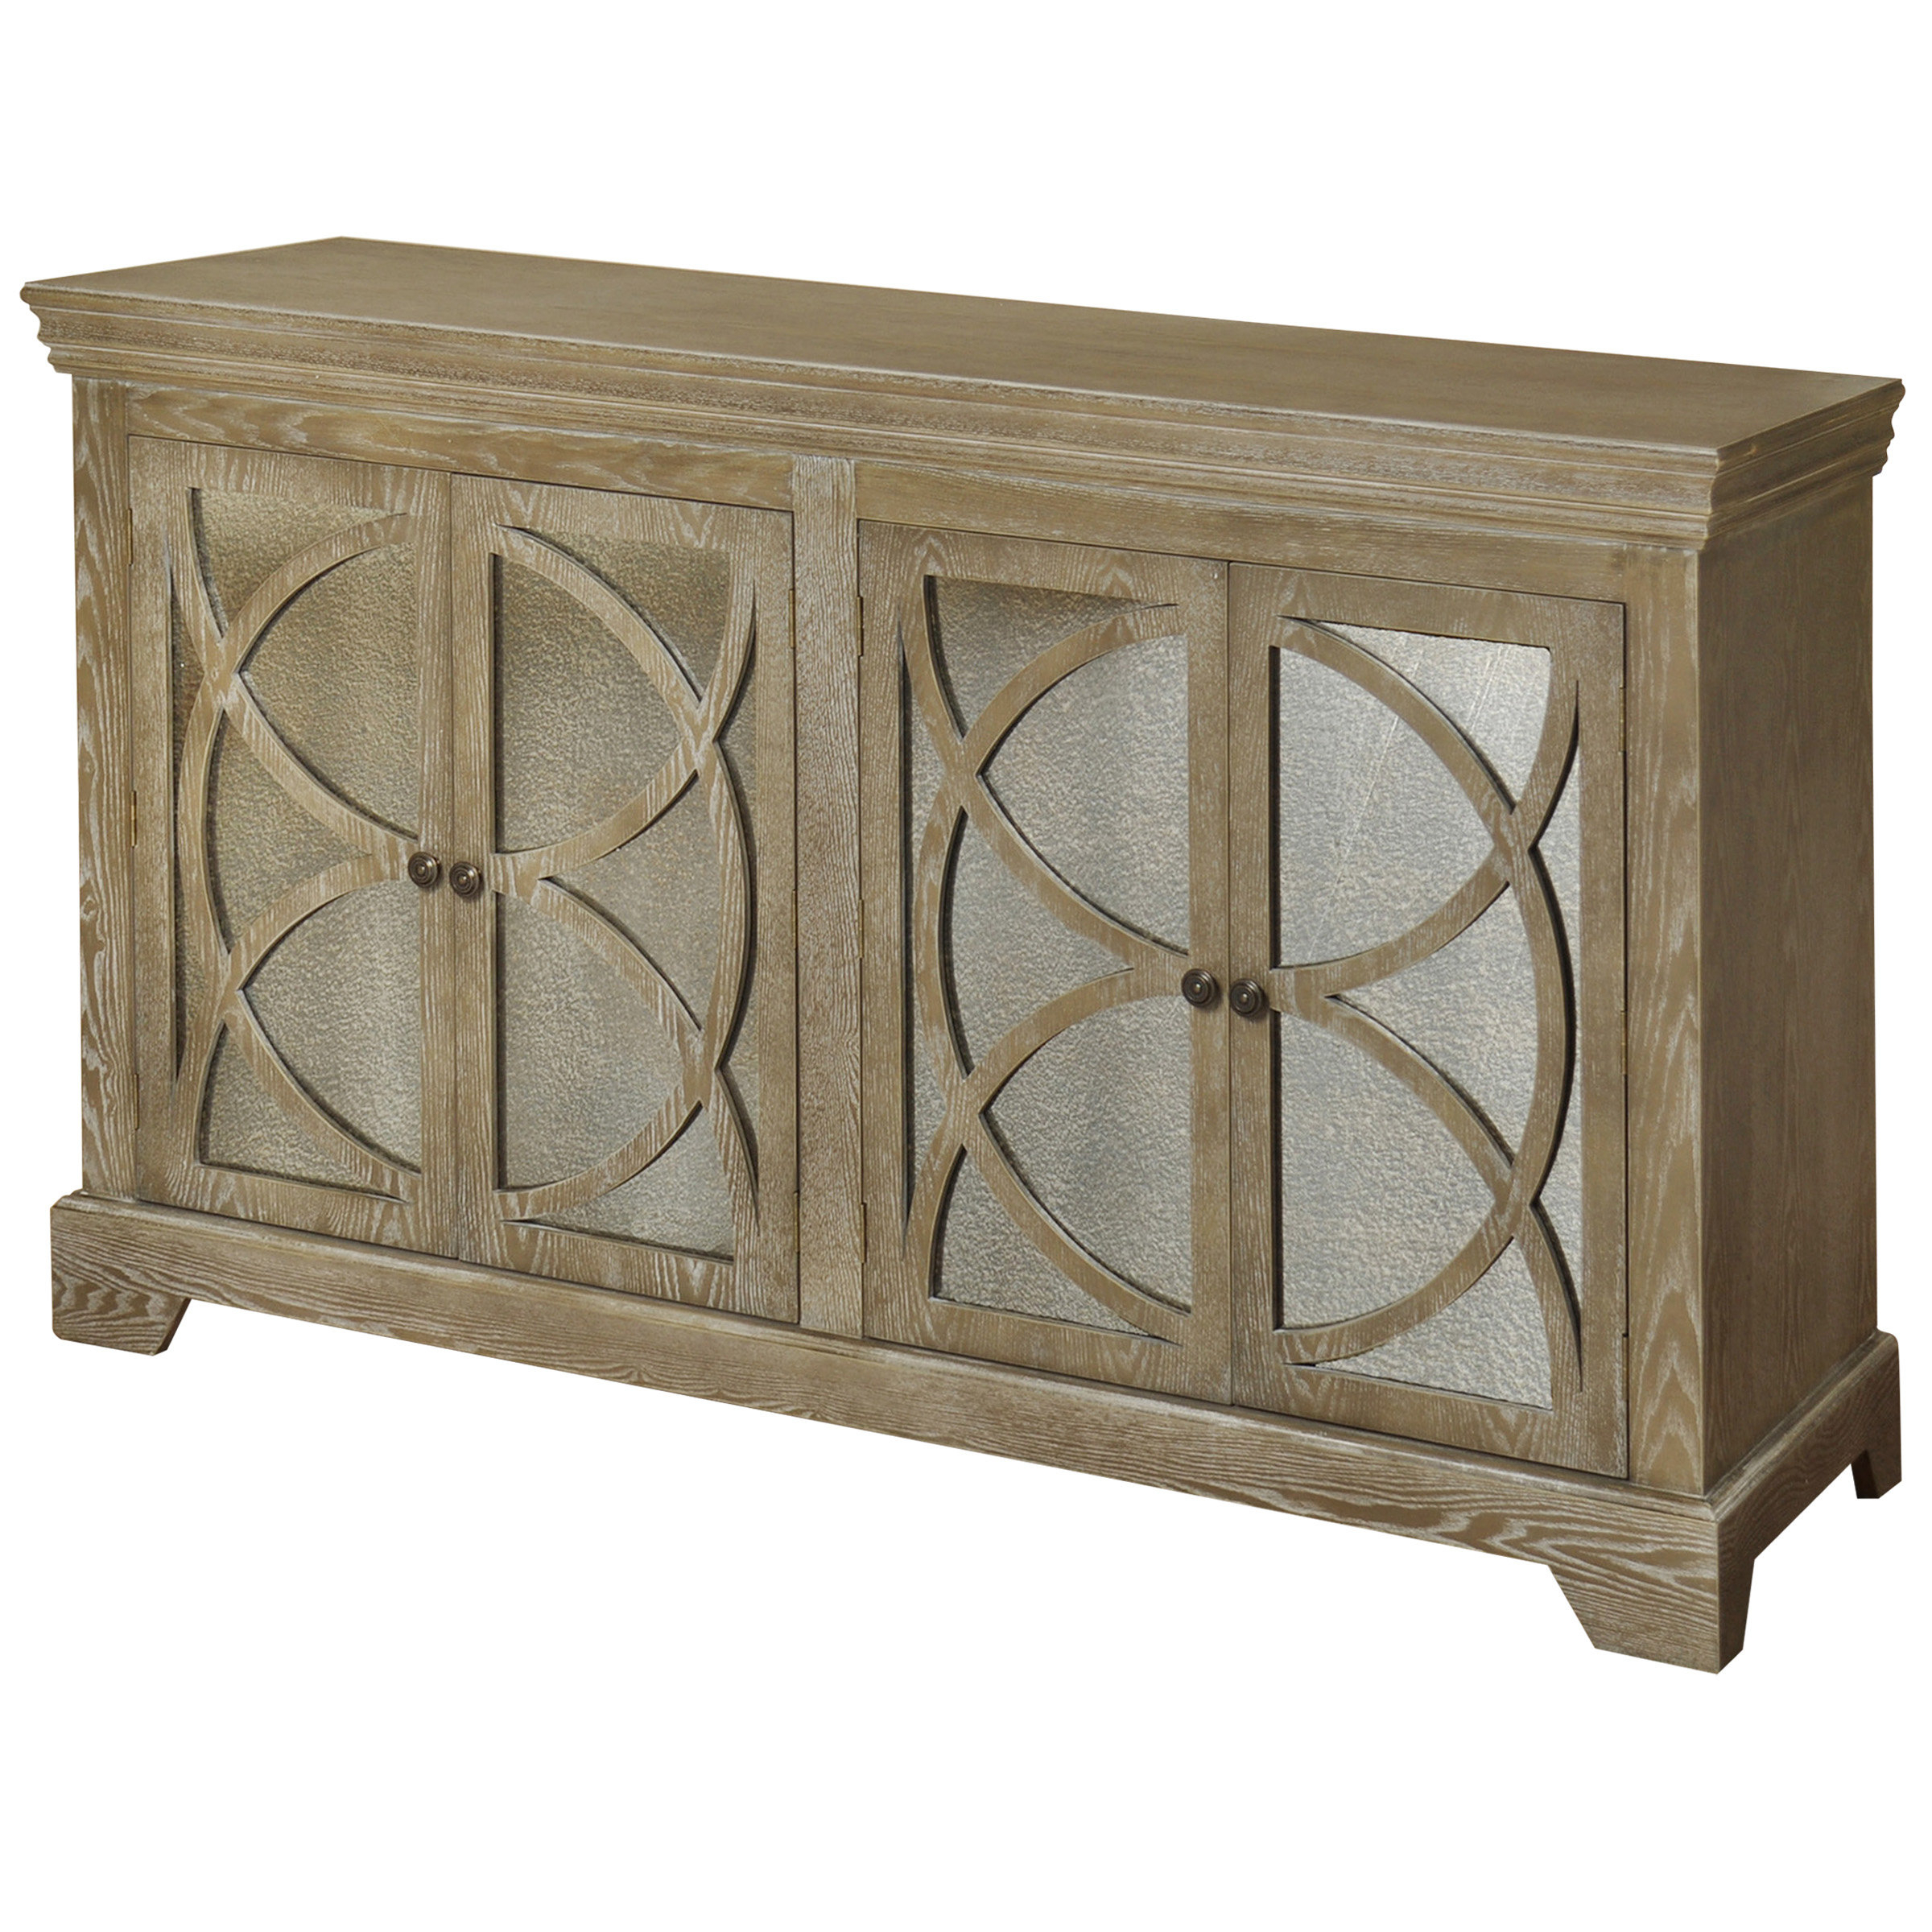 Small Credenza With Doors | Wayfair Within Most Popular Candace Door Credenzas (#19 of 20)